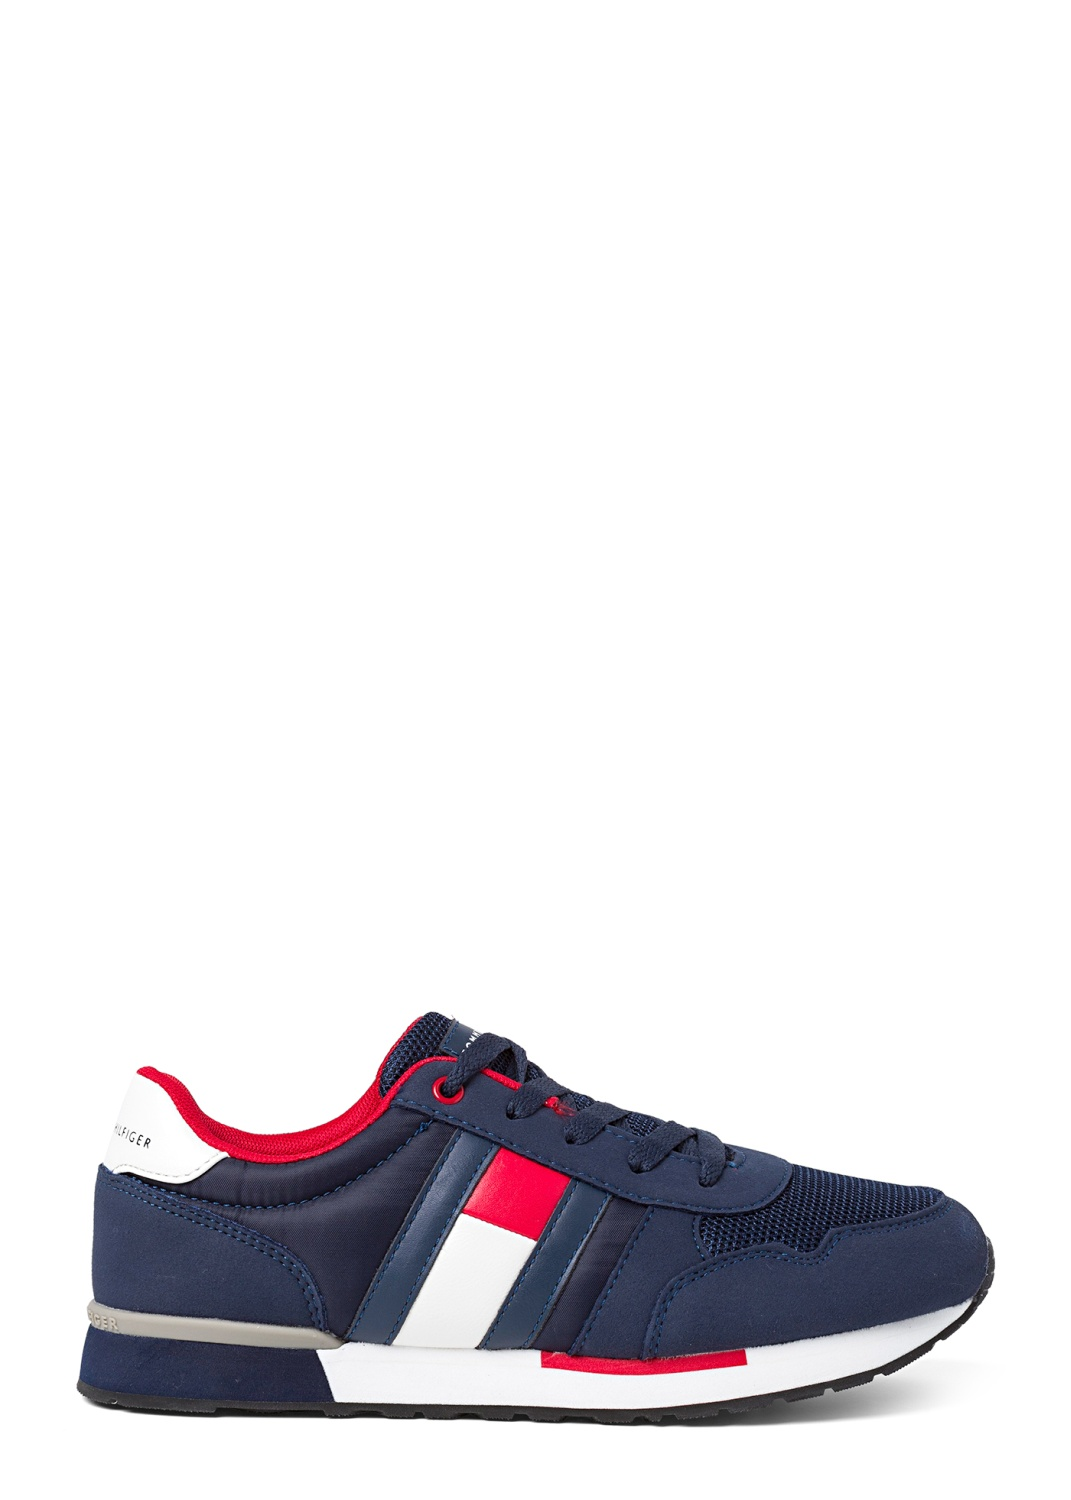 Low Cut Lace up Sneaker image number 0